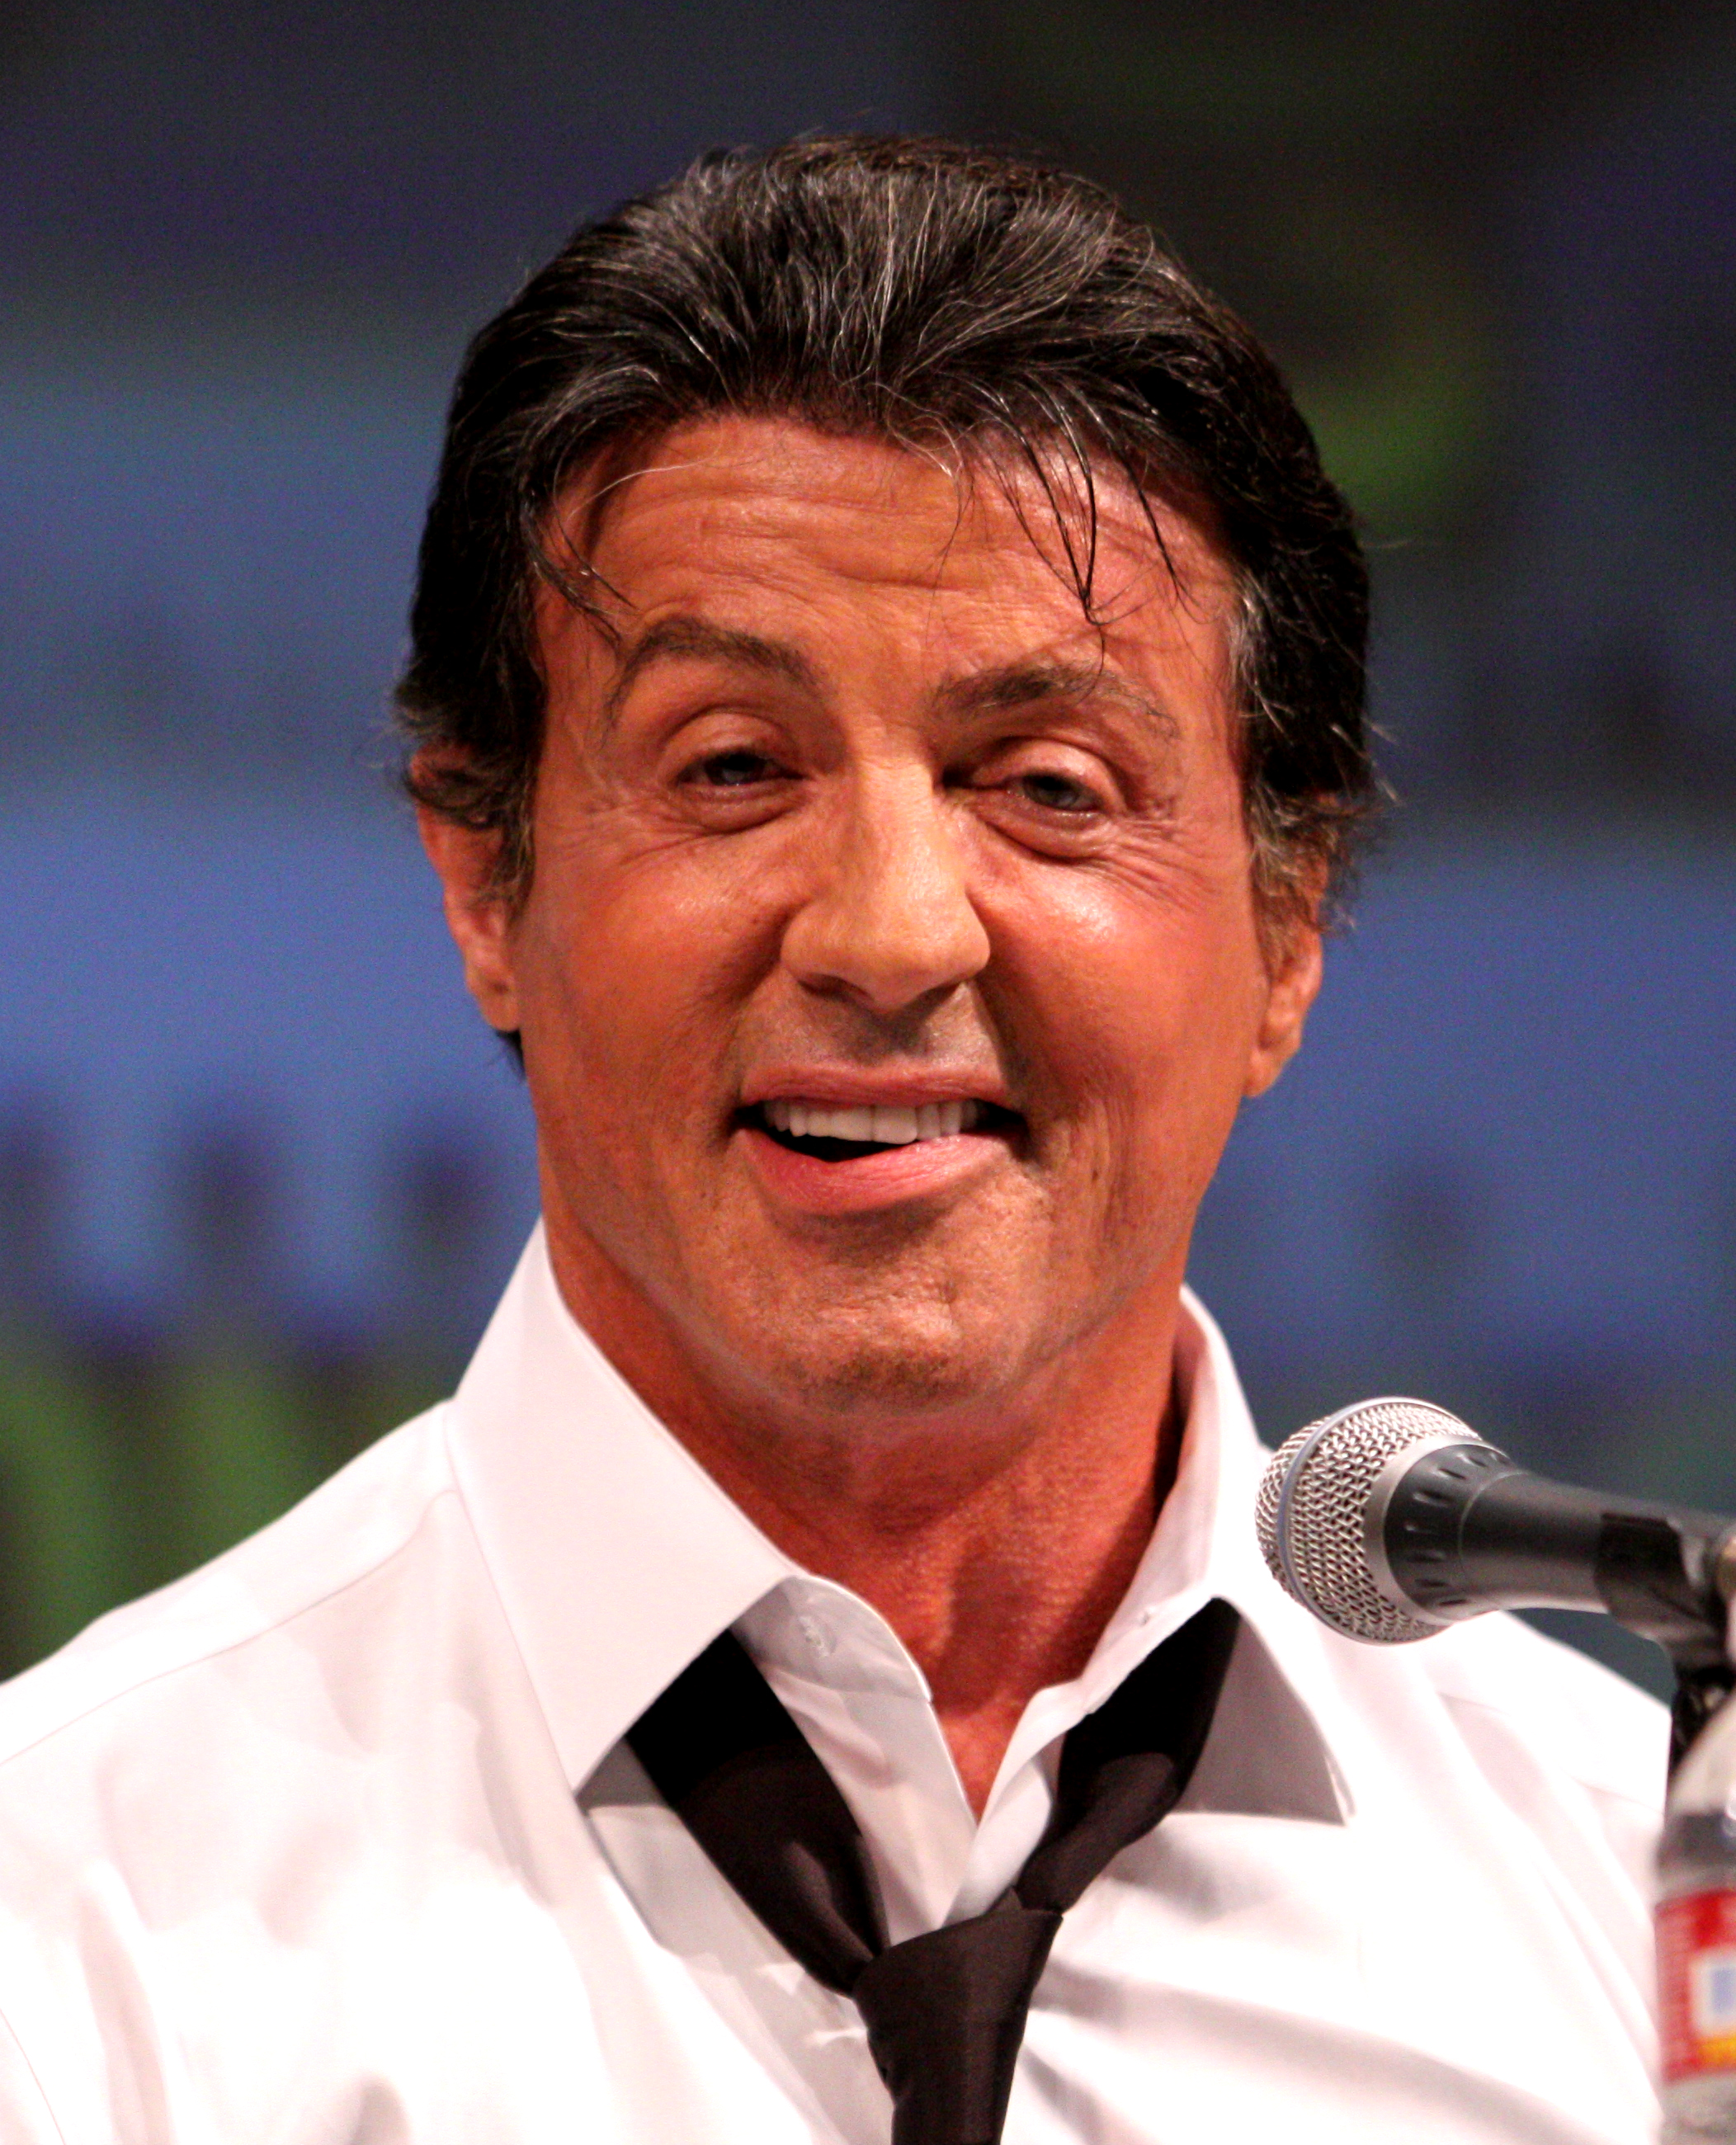 sylvester stallone wallpapers high quality download free. Black Bedroom Furniture Sets. Home Design Ideas